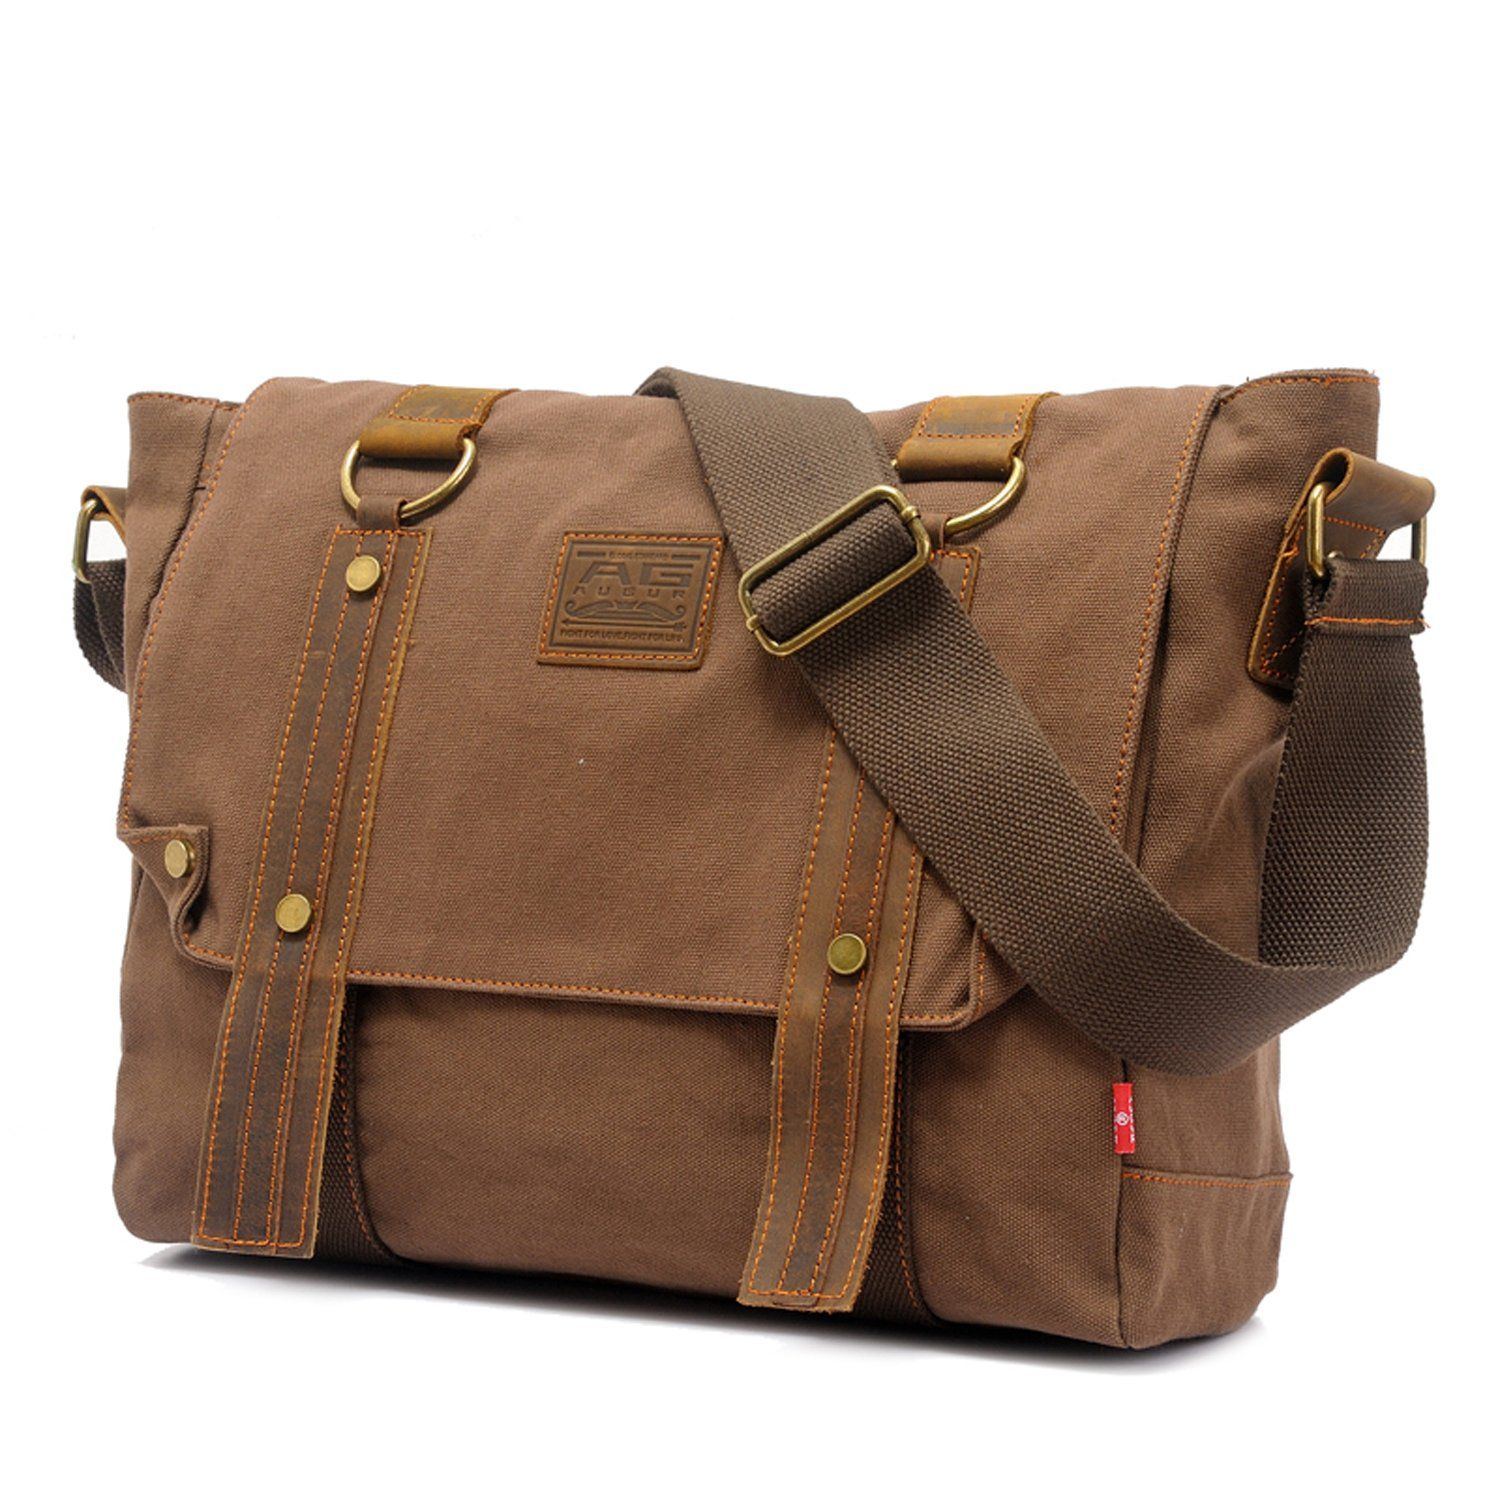 EcoCity Vintage Leather Canvas Shoulder Messenger Bags School Satchel Bag (Coffee)